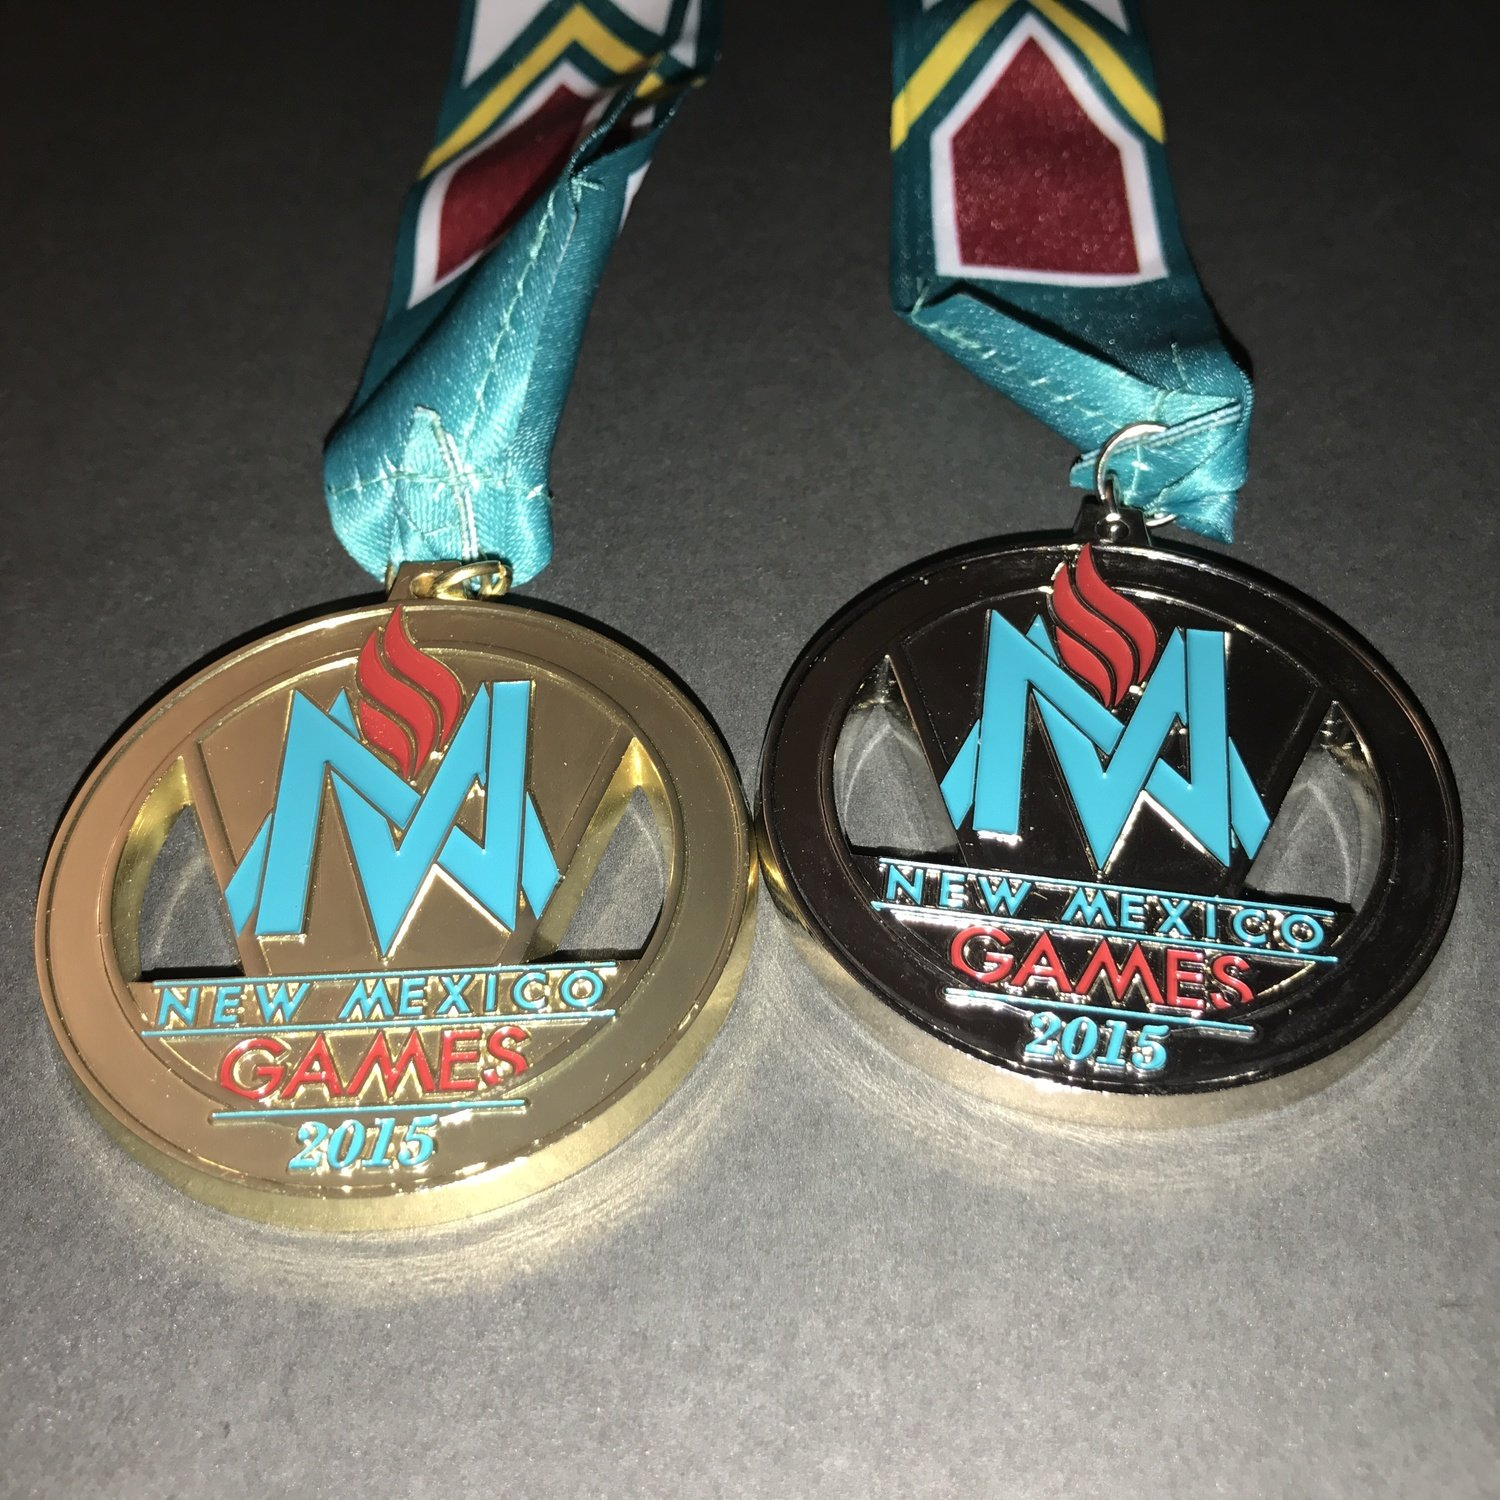 2015 New Mexico Games Medal